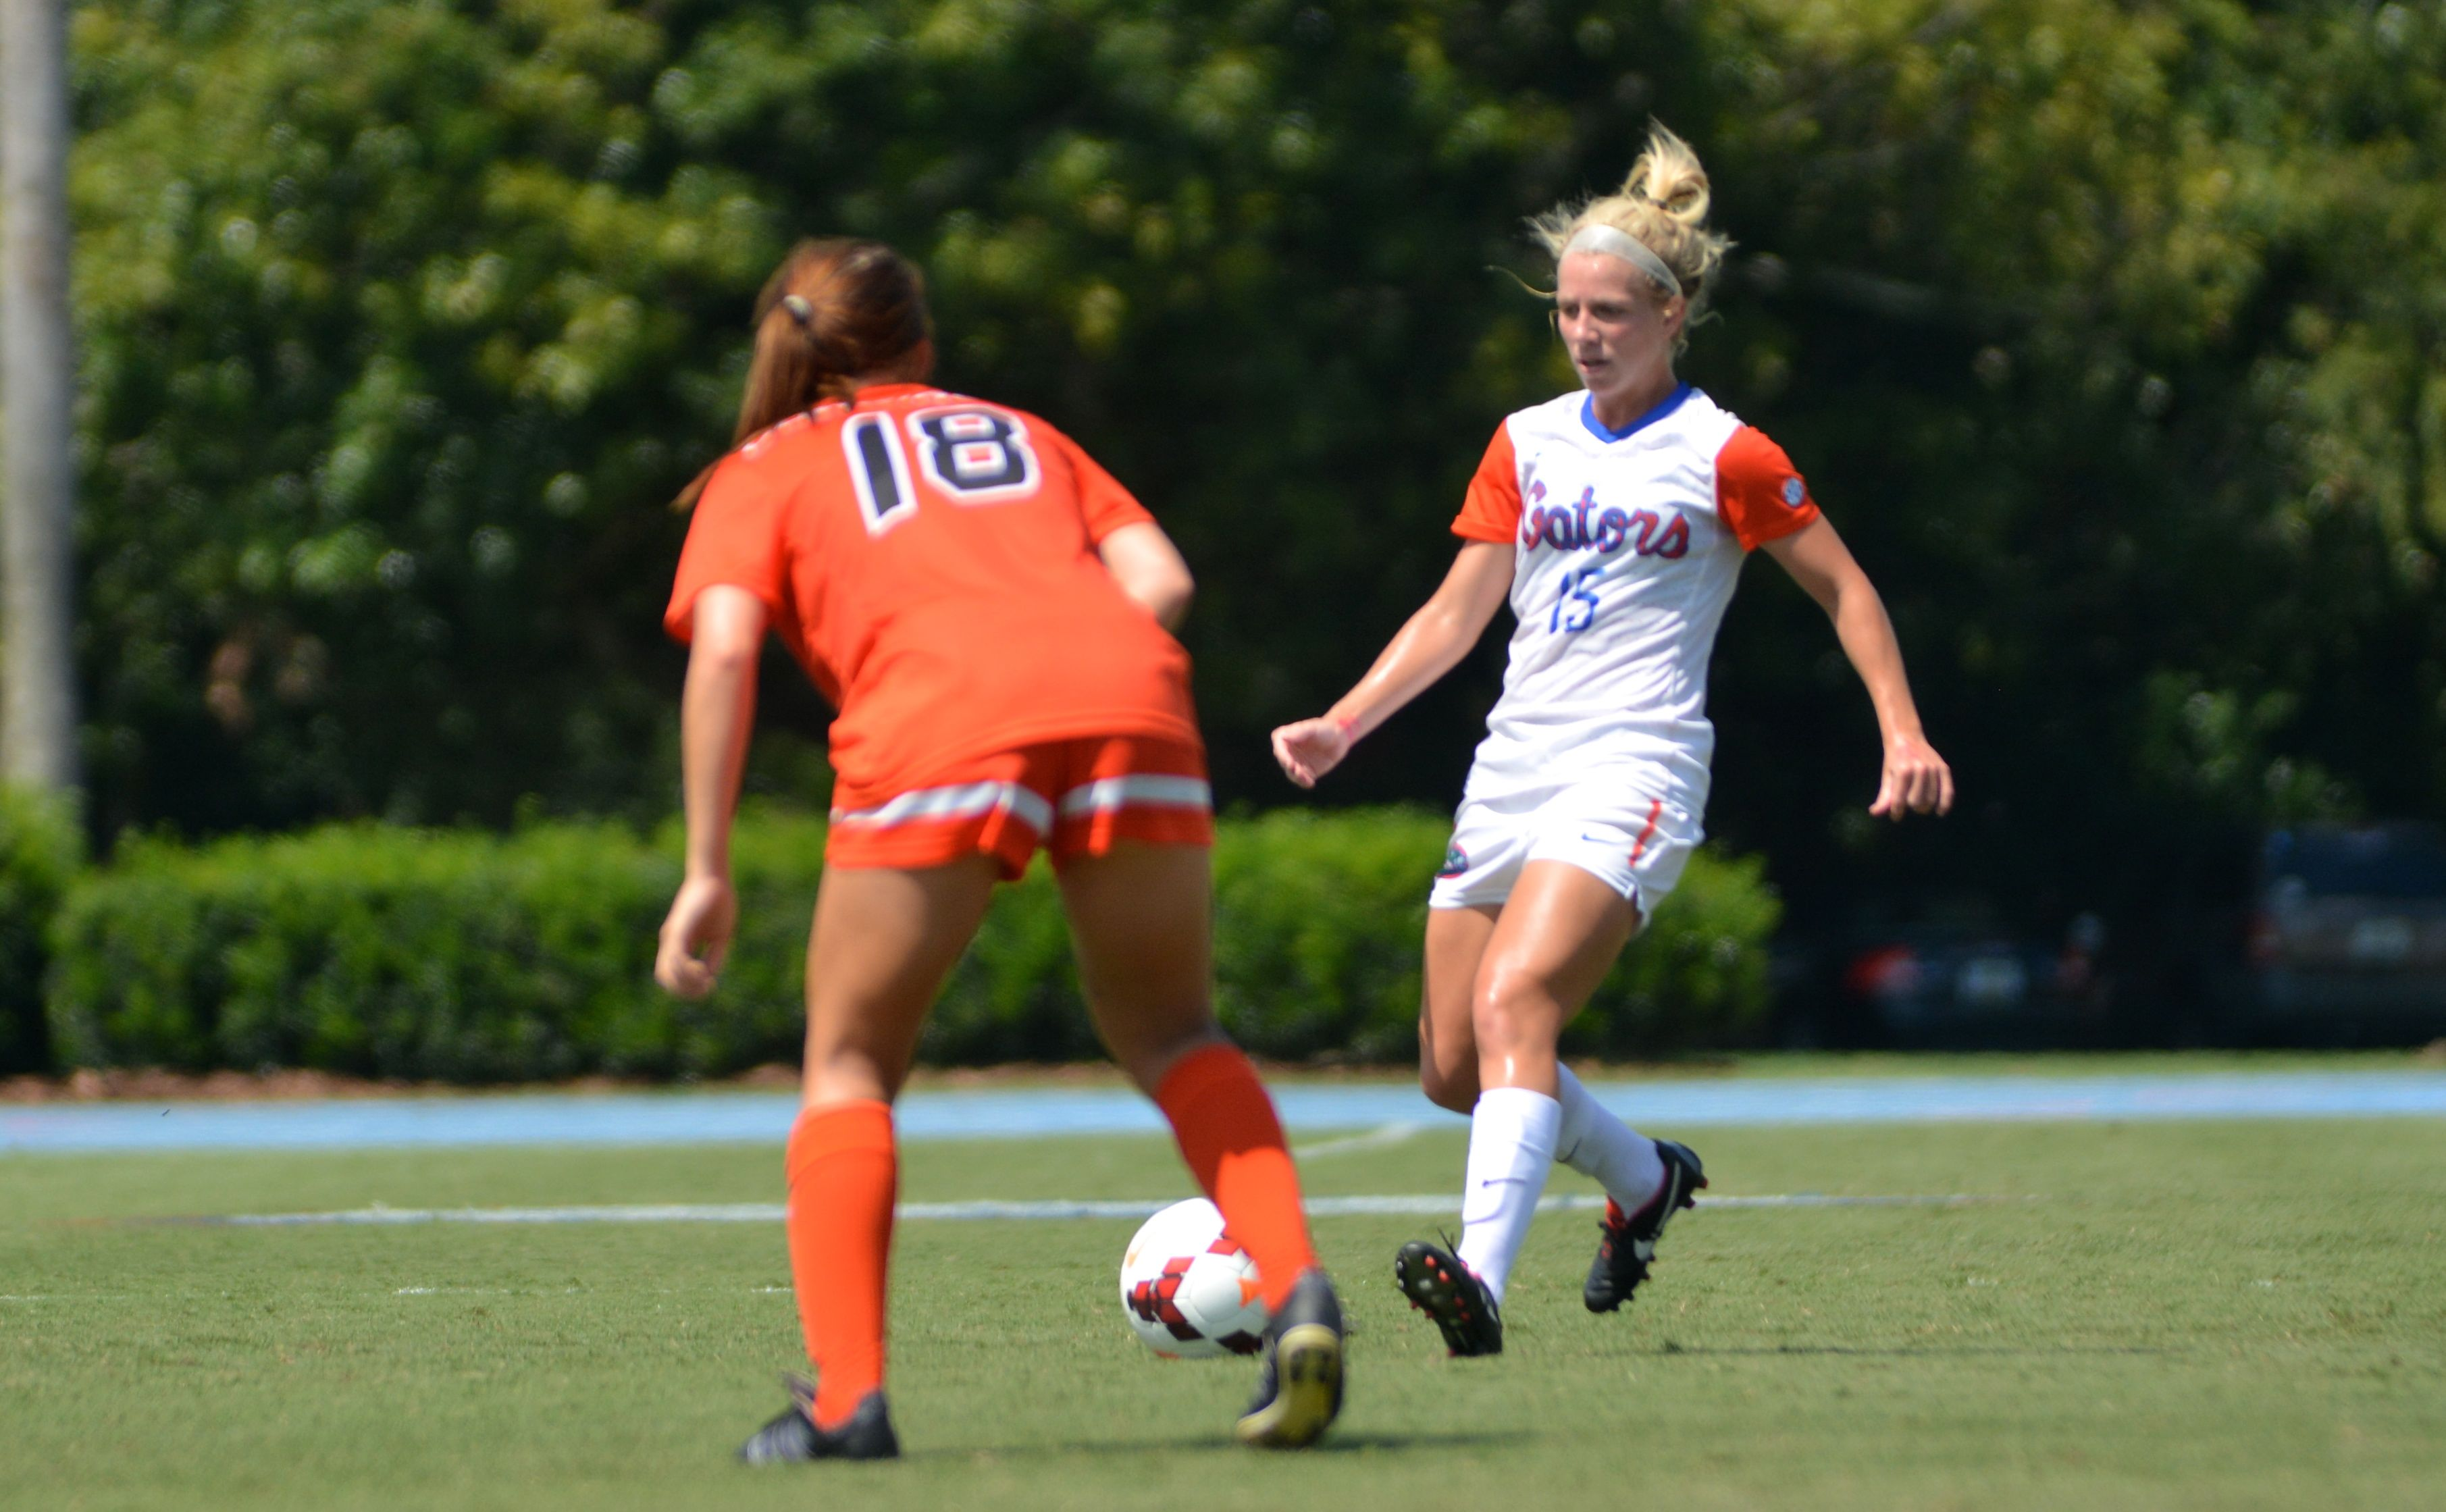 Tessa Andujar scored a wacky goal for Florida Saturday during their shutout win.